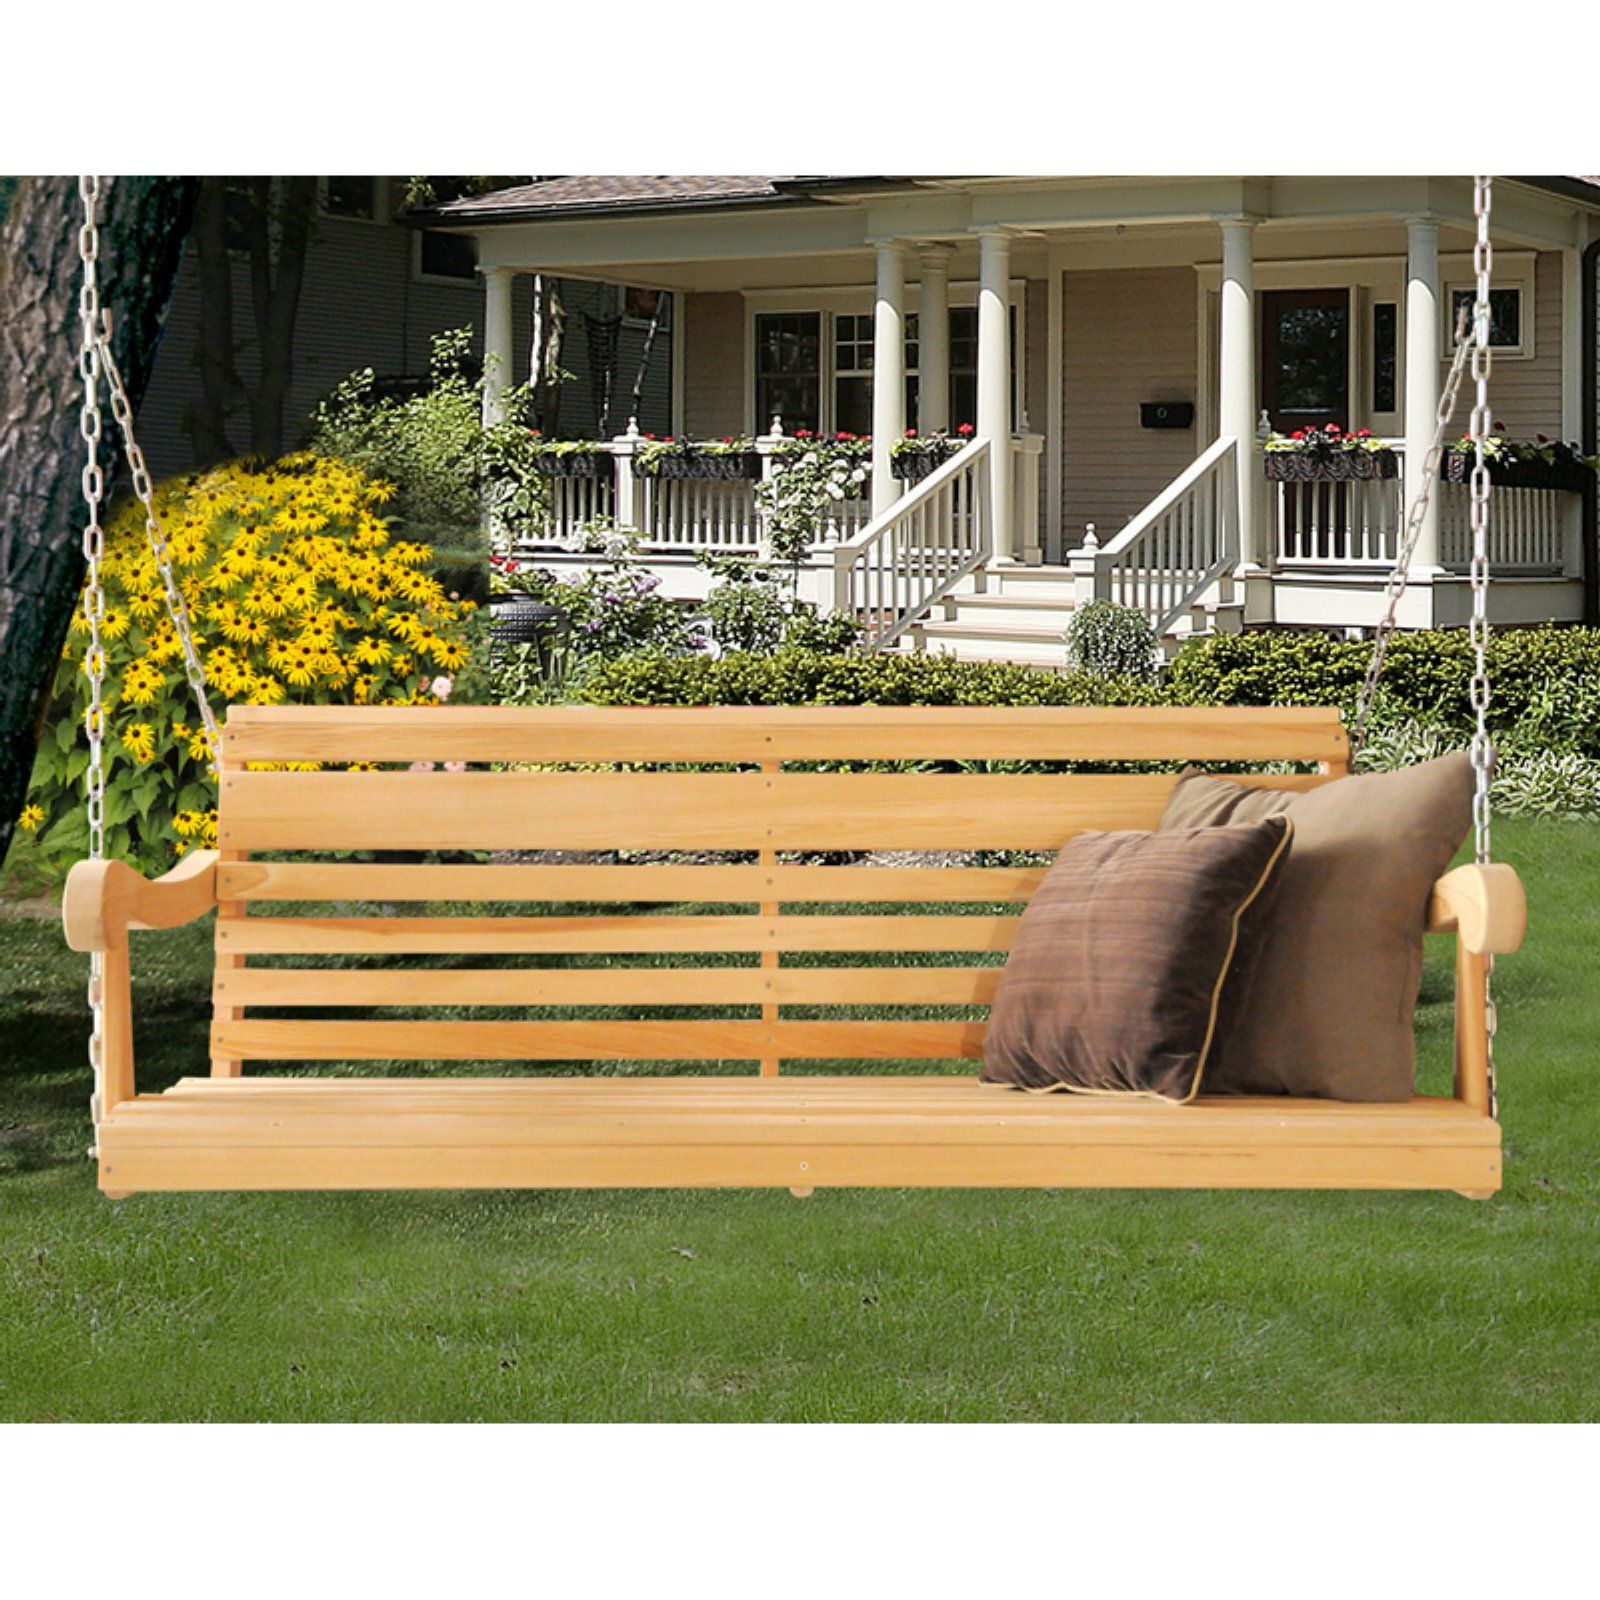 Contoured Classic Porch Swings Regarding Best And Newest Hershy Way Cypress 5 Ft. Classic Grandpa Porch Swing In 2019 (Gallery 26 of 30)